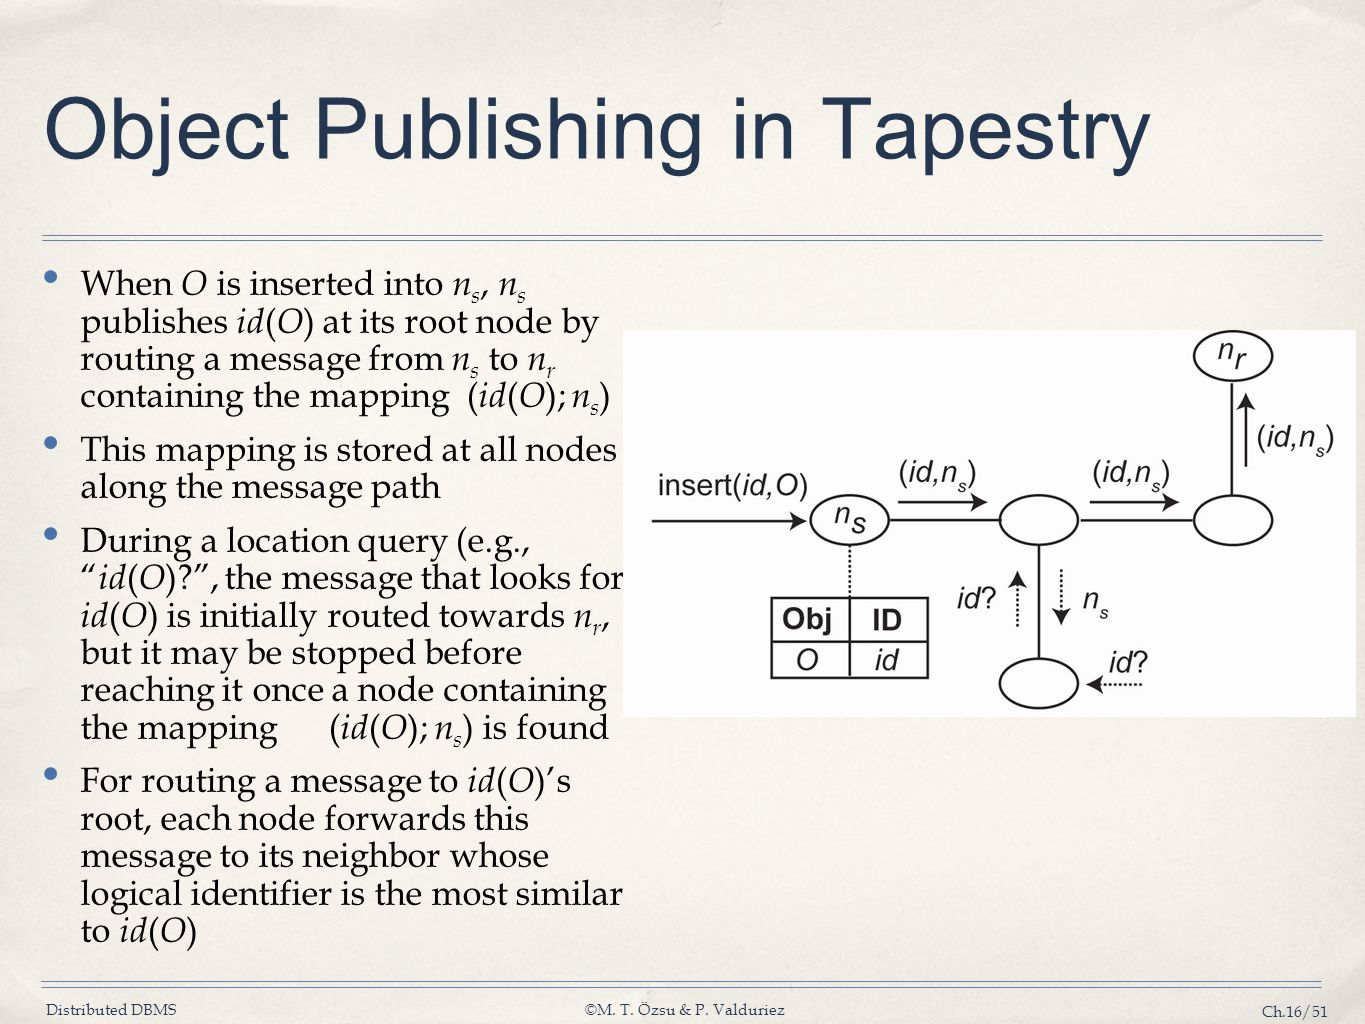 Distributed DBMS©M. T. Özsu & P. Valduriez Ch.16/51 Object Publishing in Tapestry When O is inserted into n s, n s publishes id ( O ) at its root node